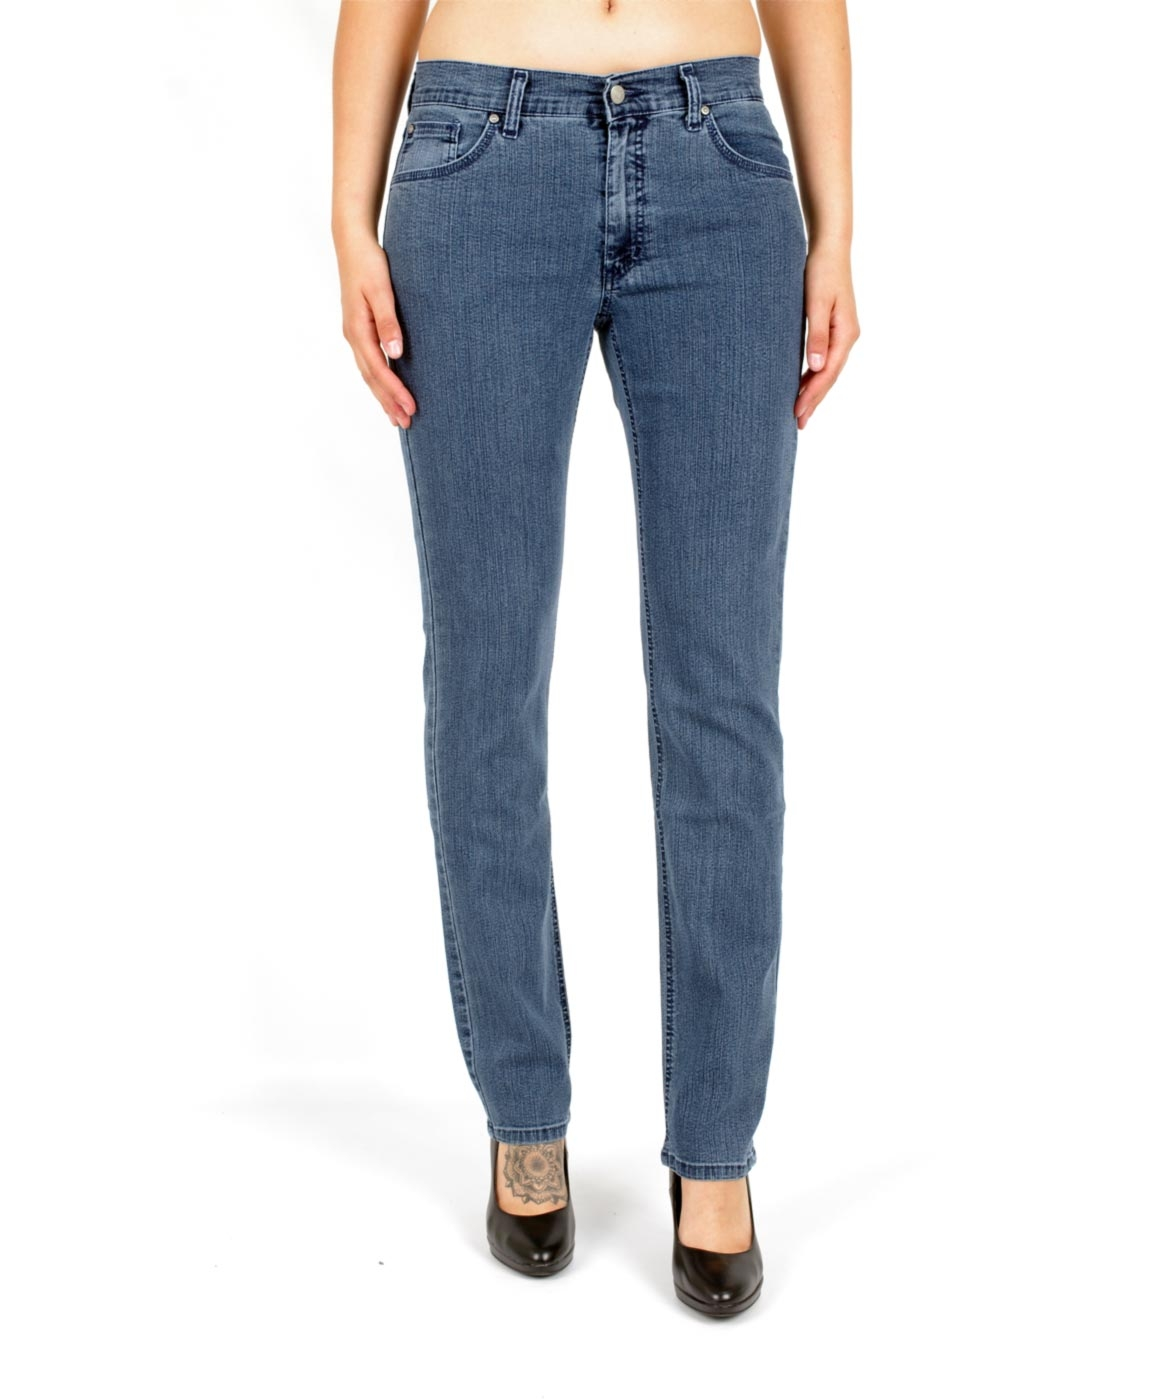 Hosen - Angels Straight Leg Jeans Cici in Superstone  - Onlineshop Jeans Meile